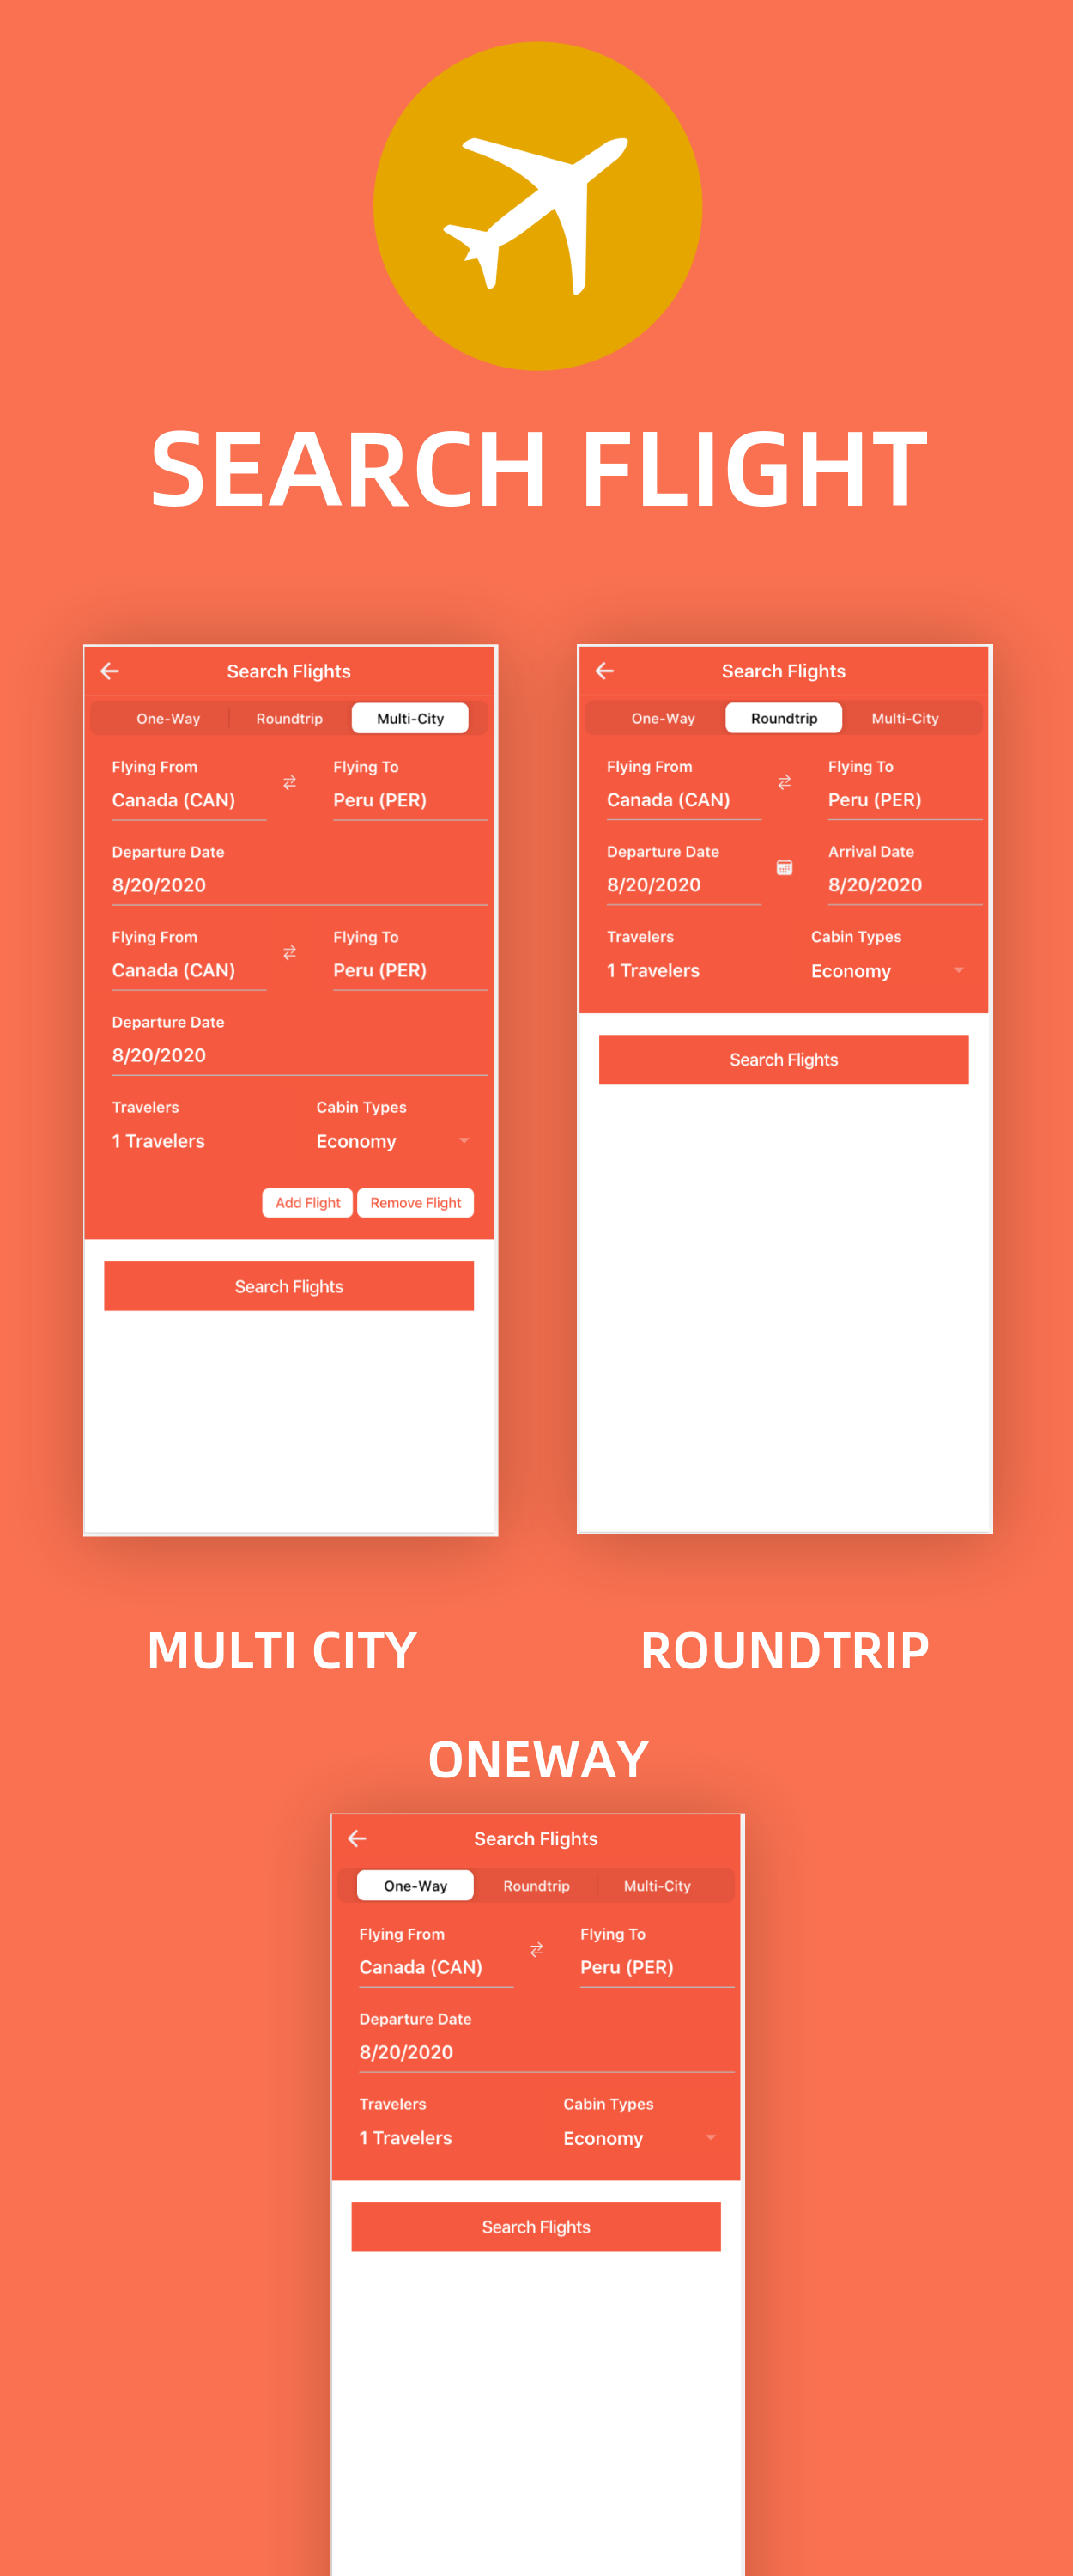 TravelEasy - A Travel Agency Theme UI App By Ionic 5 (Car, Hotel, Flight Booking) - 5